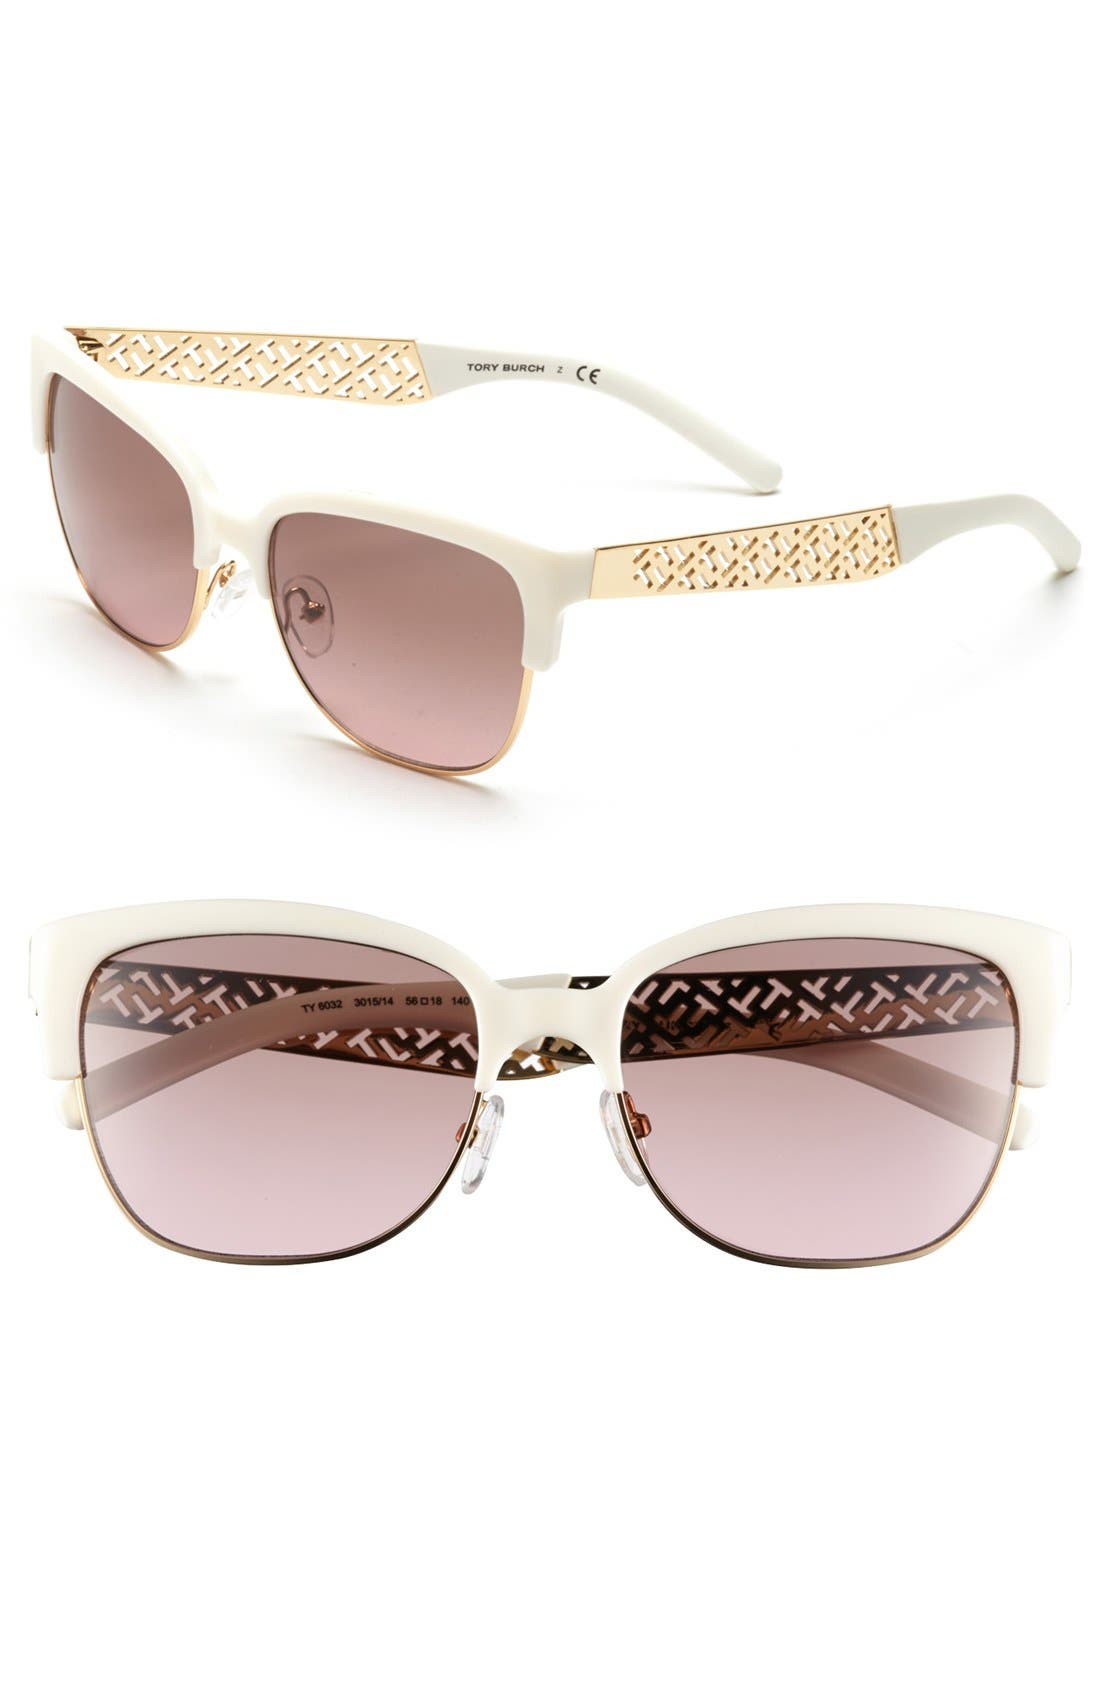 Alternate Image 1 Selected - Tory Burch 56mm Cat Eye Sunglasses